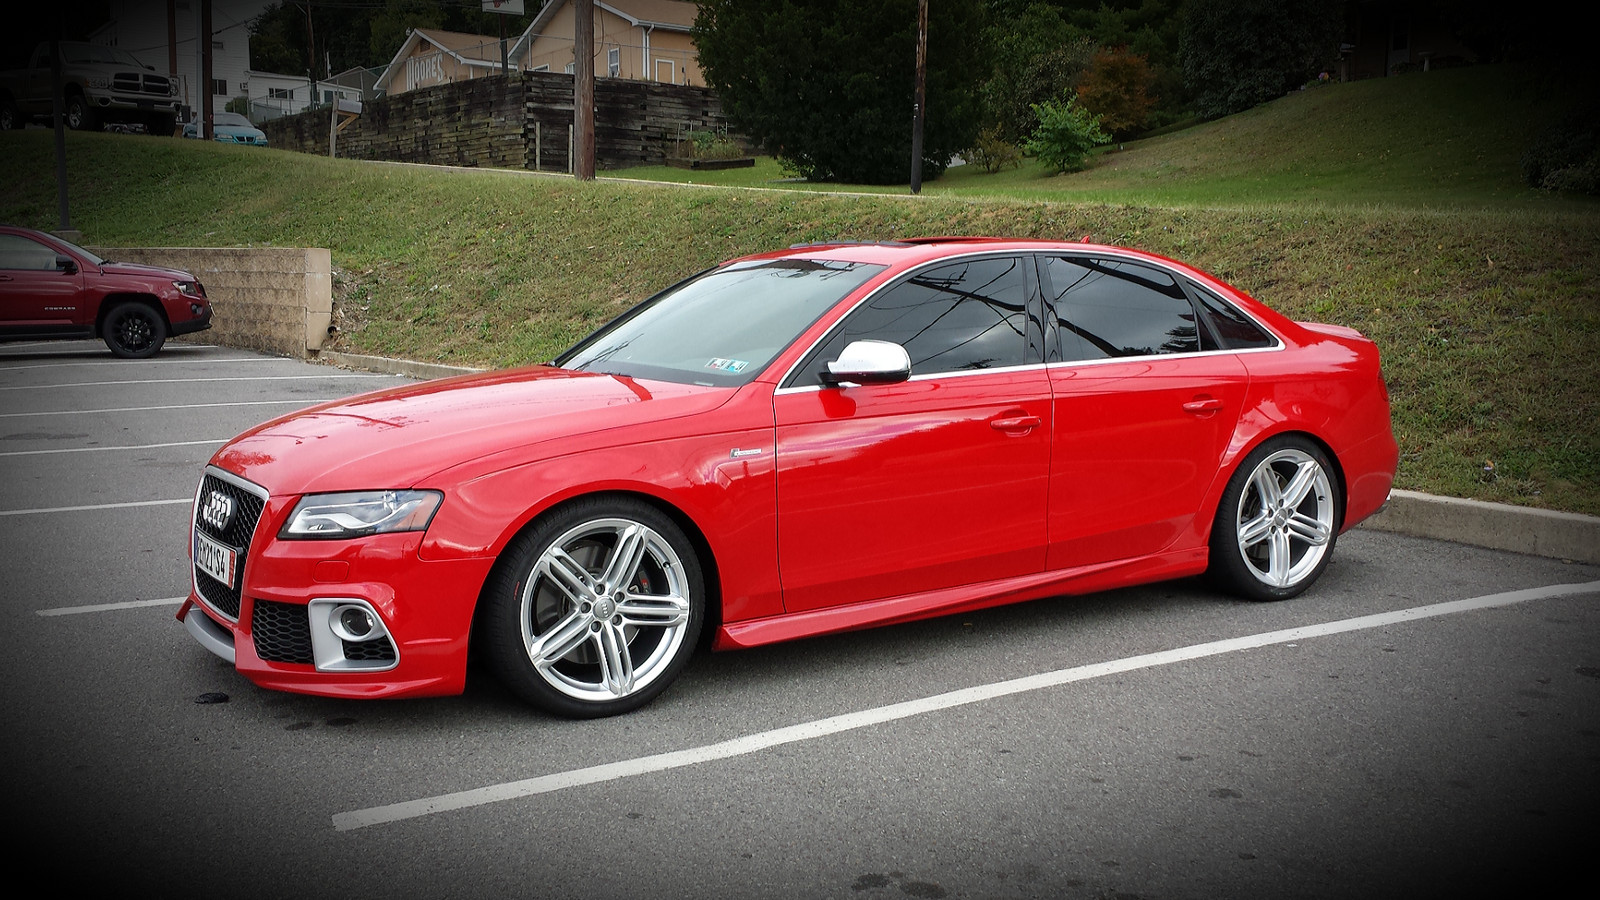 2011 brilliant red Audi S4  picture, mods, upgrades